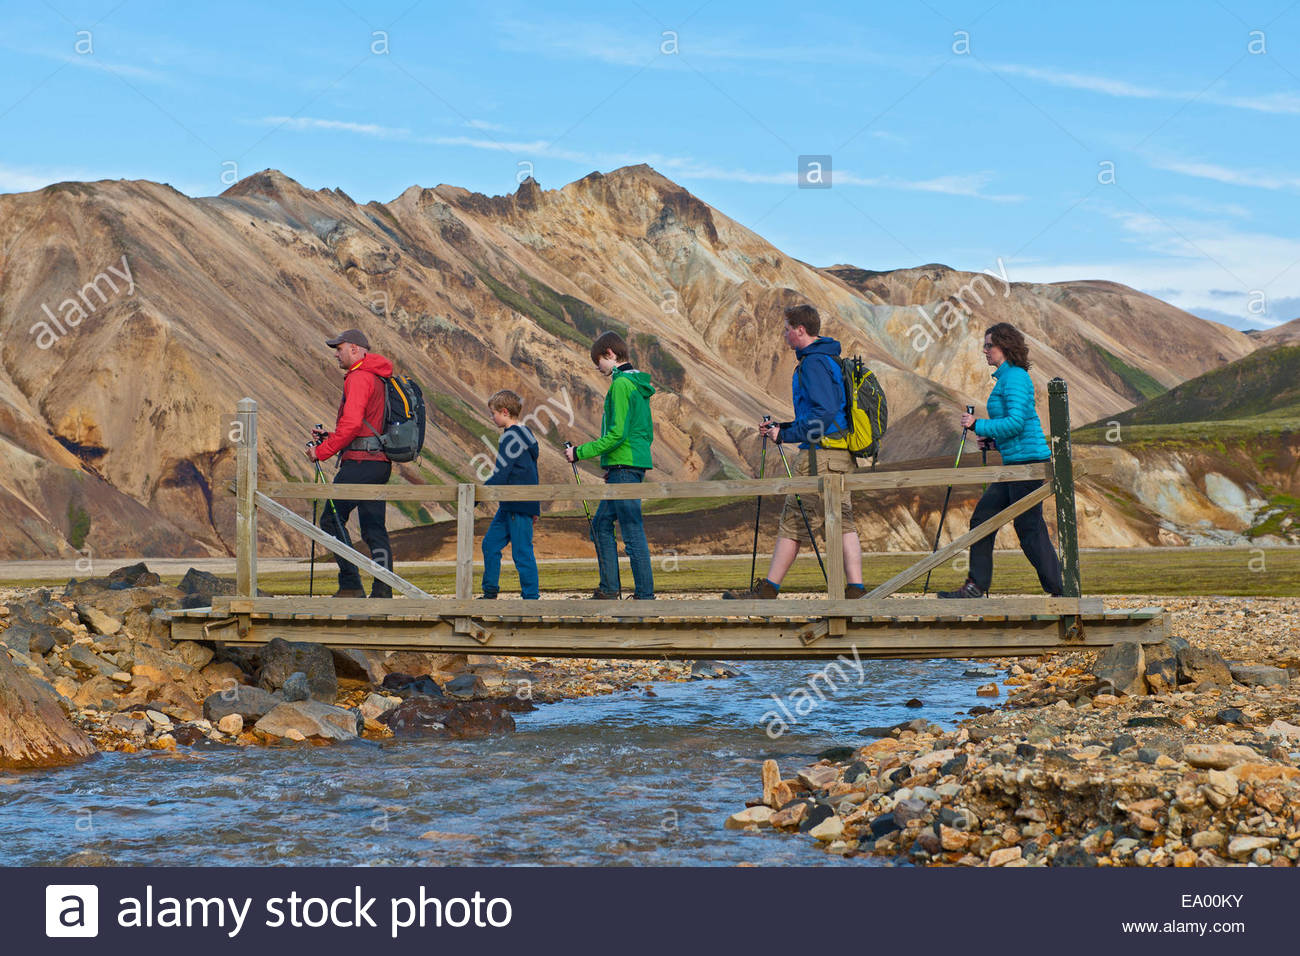 Family crossing the river bridge at Landmannalaugar, Fjallabak, Iceland - Stock Image